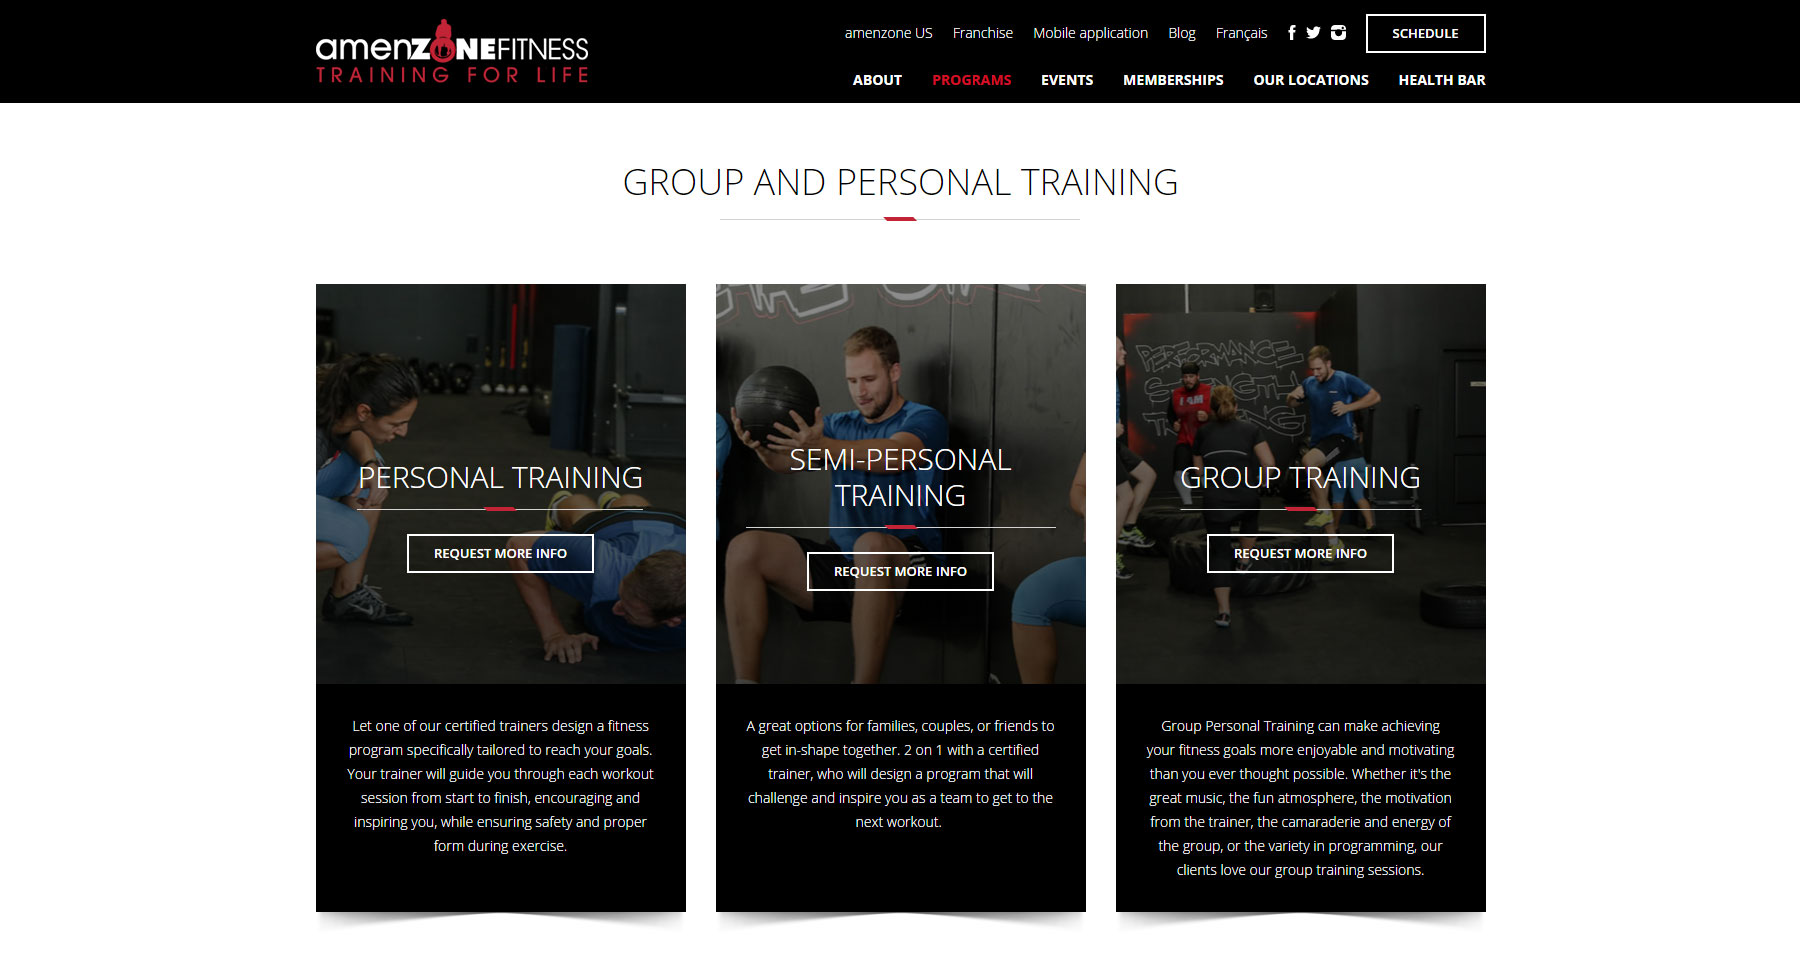 Amenzone Canada - Website of the Day